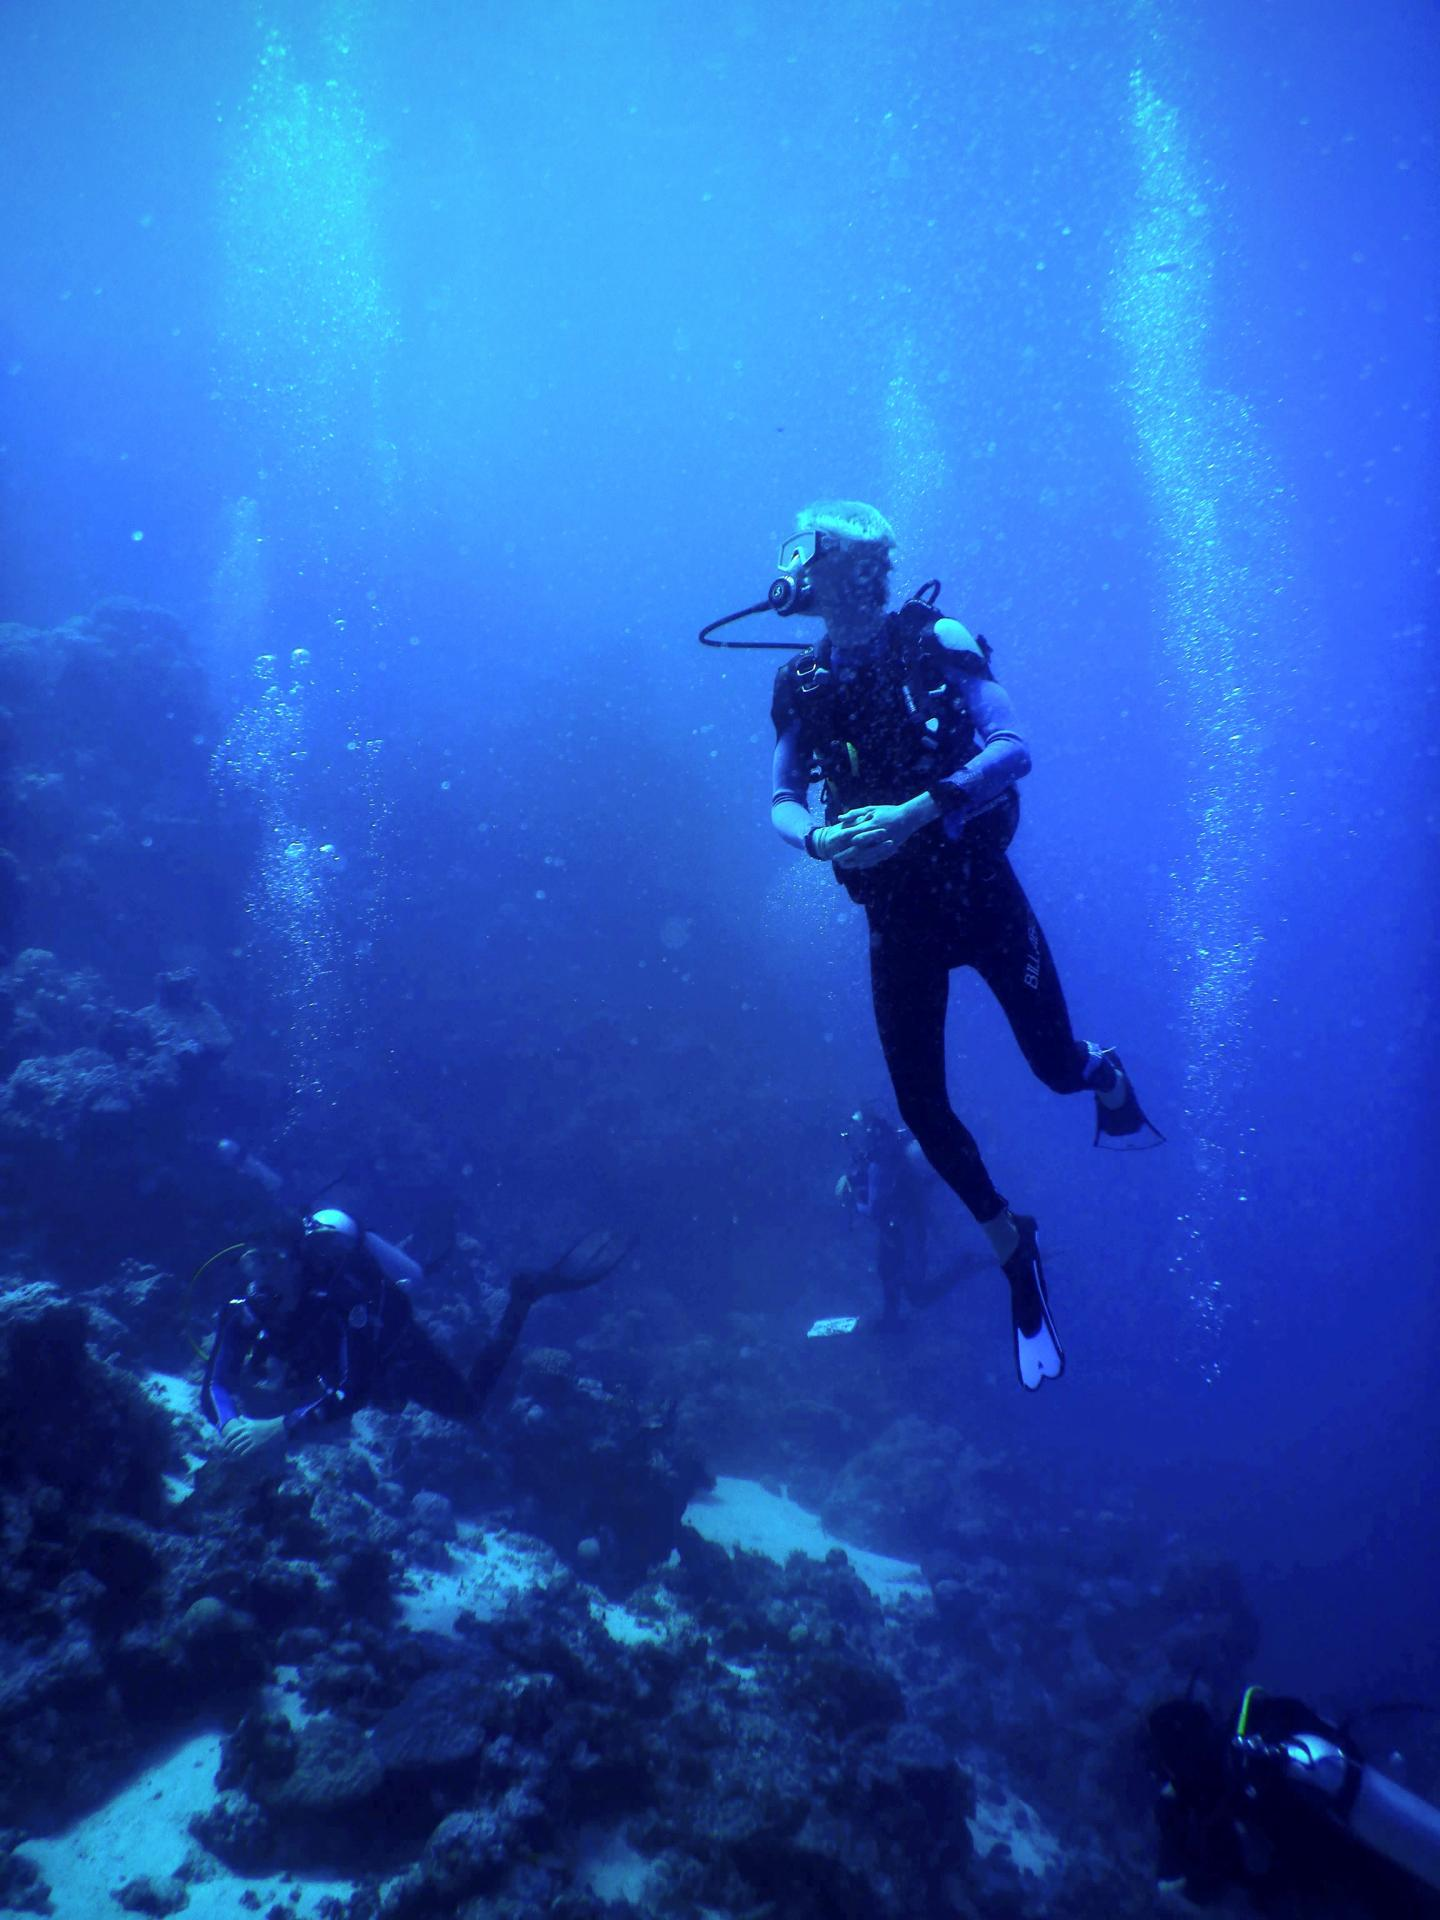 Environmental Scientists Need Better Emotional Support, Argue Marine Biologists